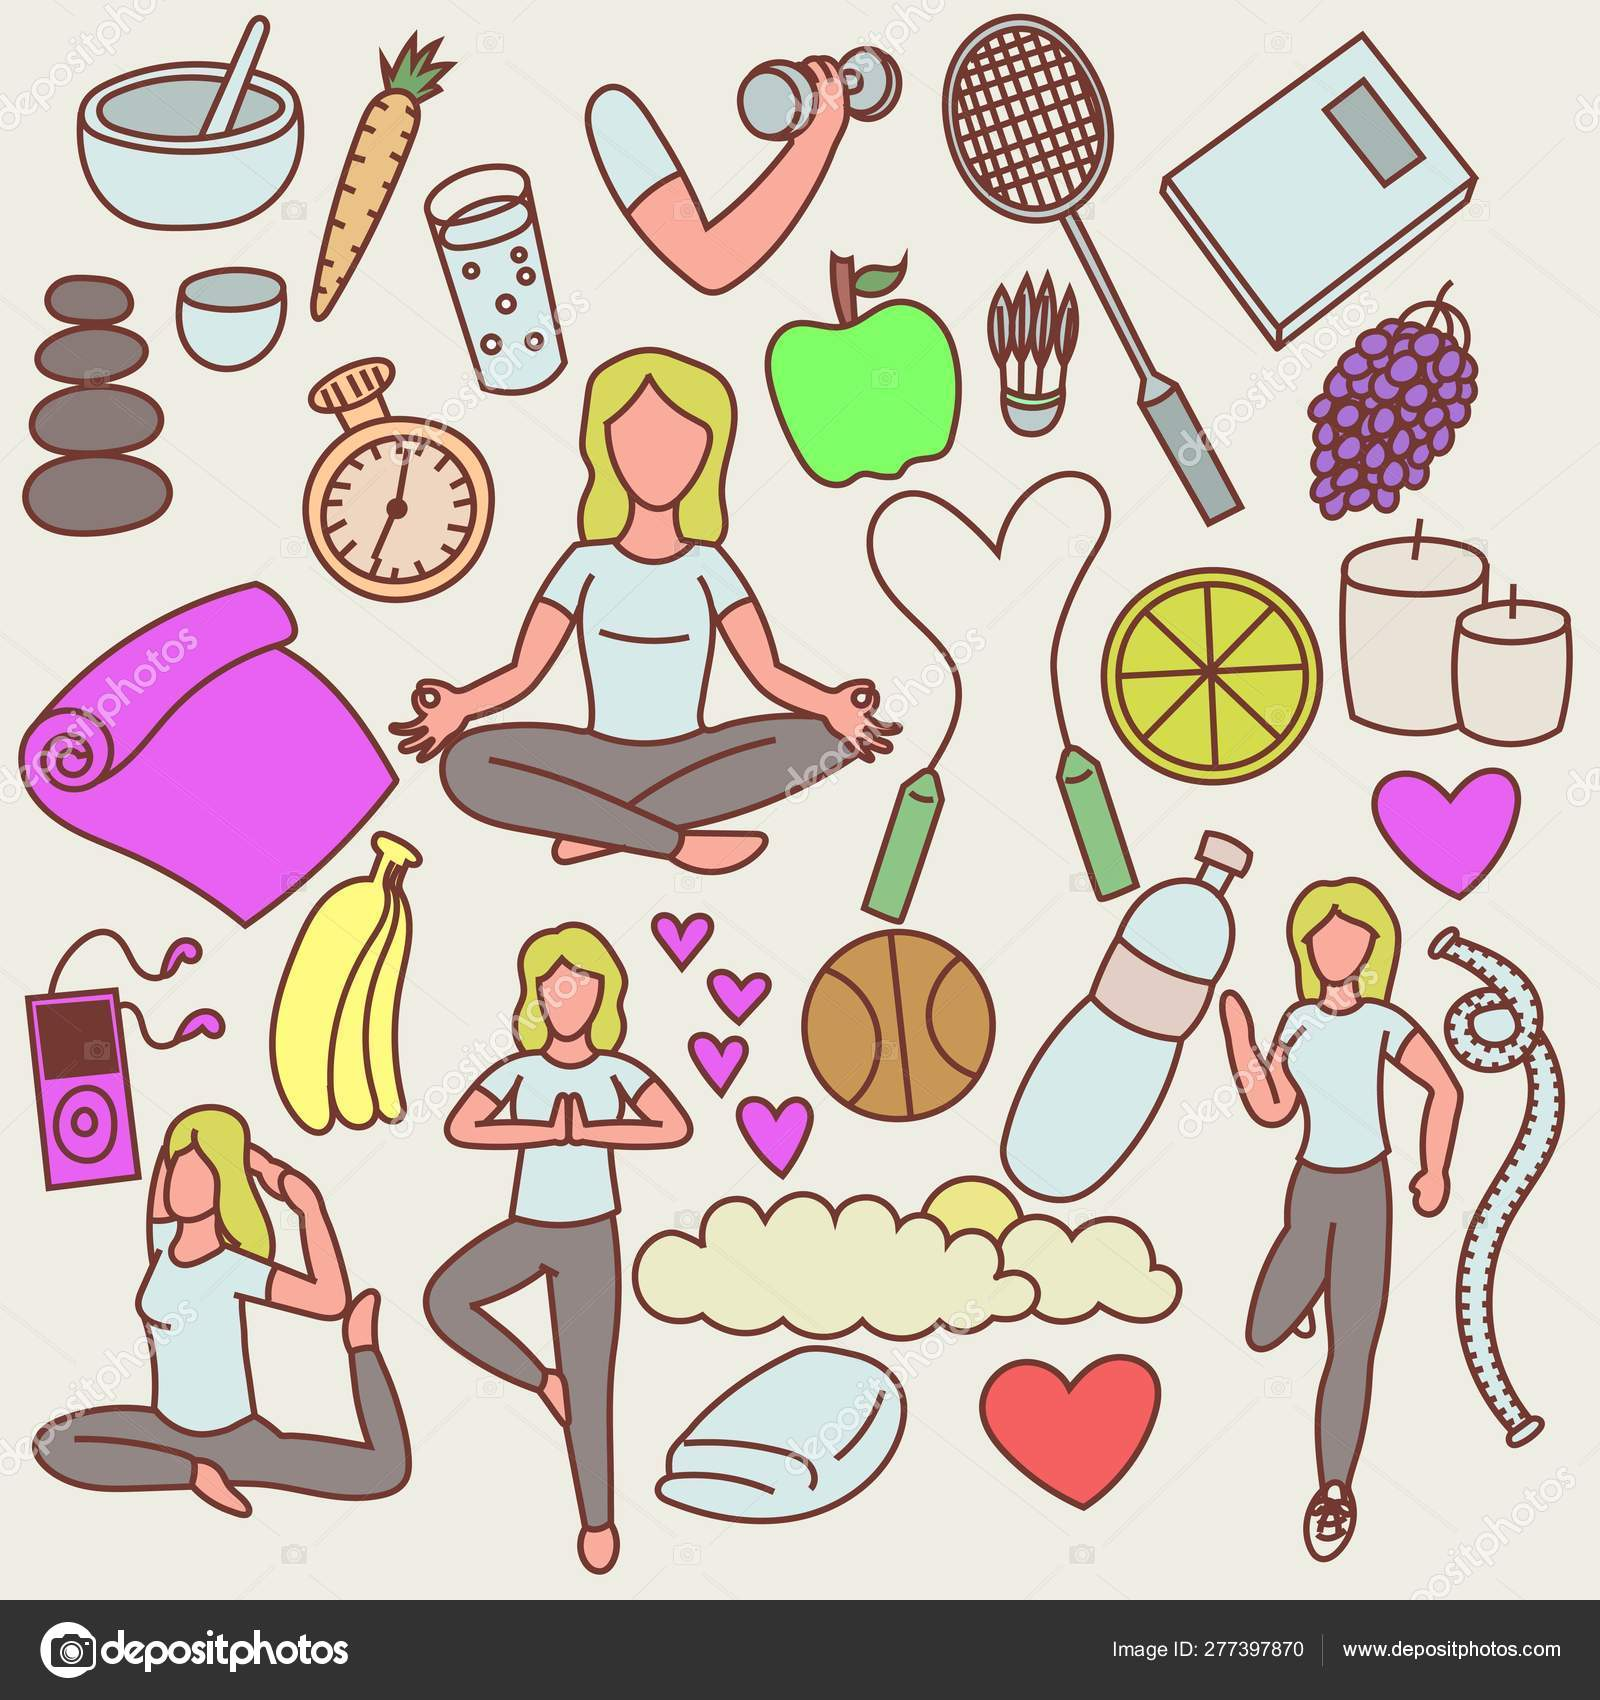 Yoga Healthy Lifestyle Drawings Art Stock Vector C Easyvectorartidea 277397870